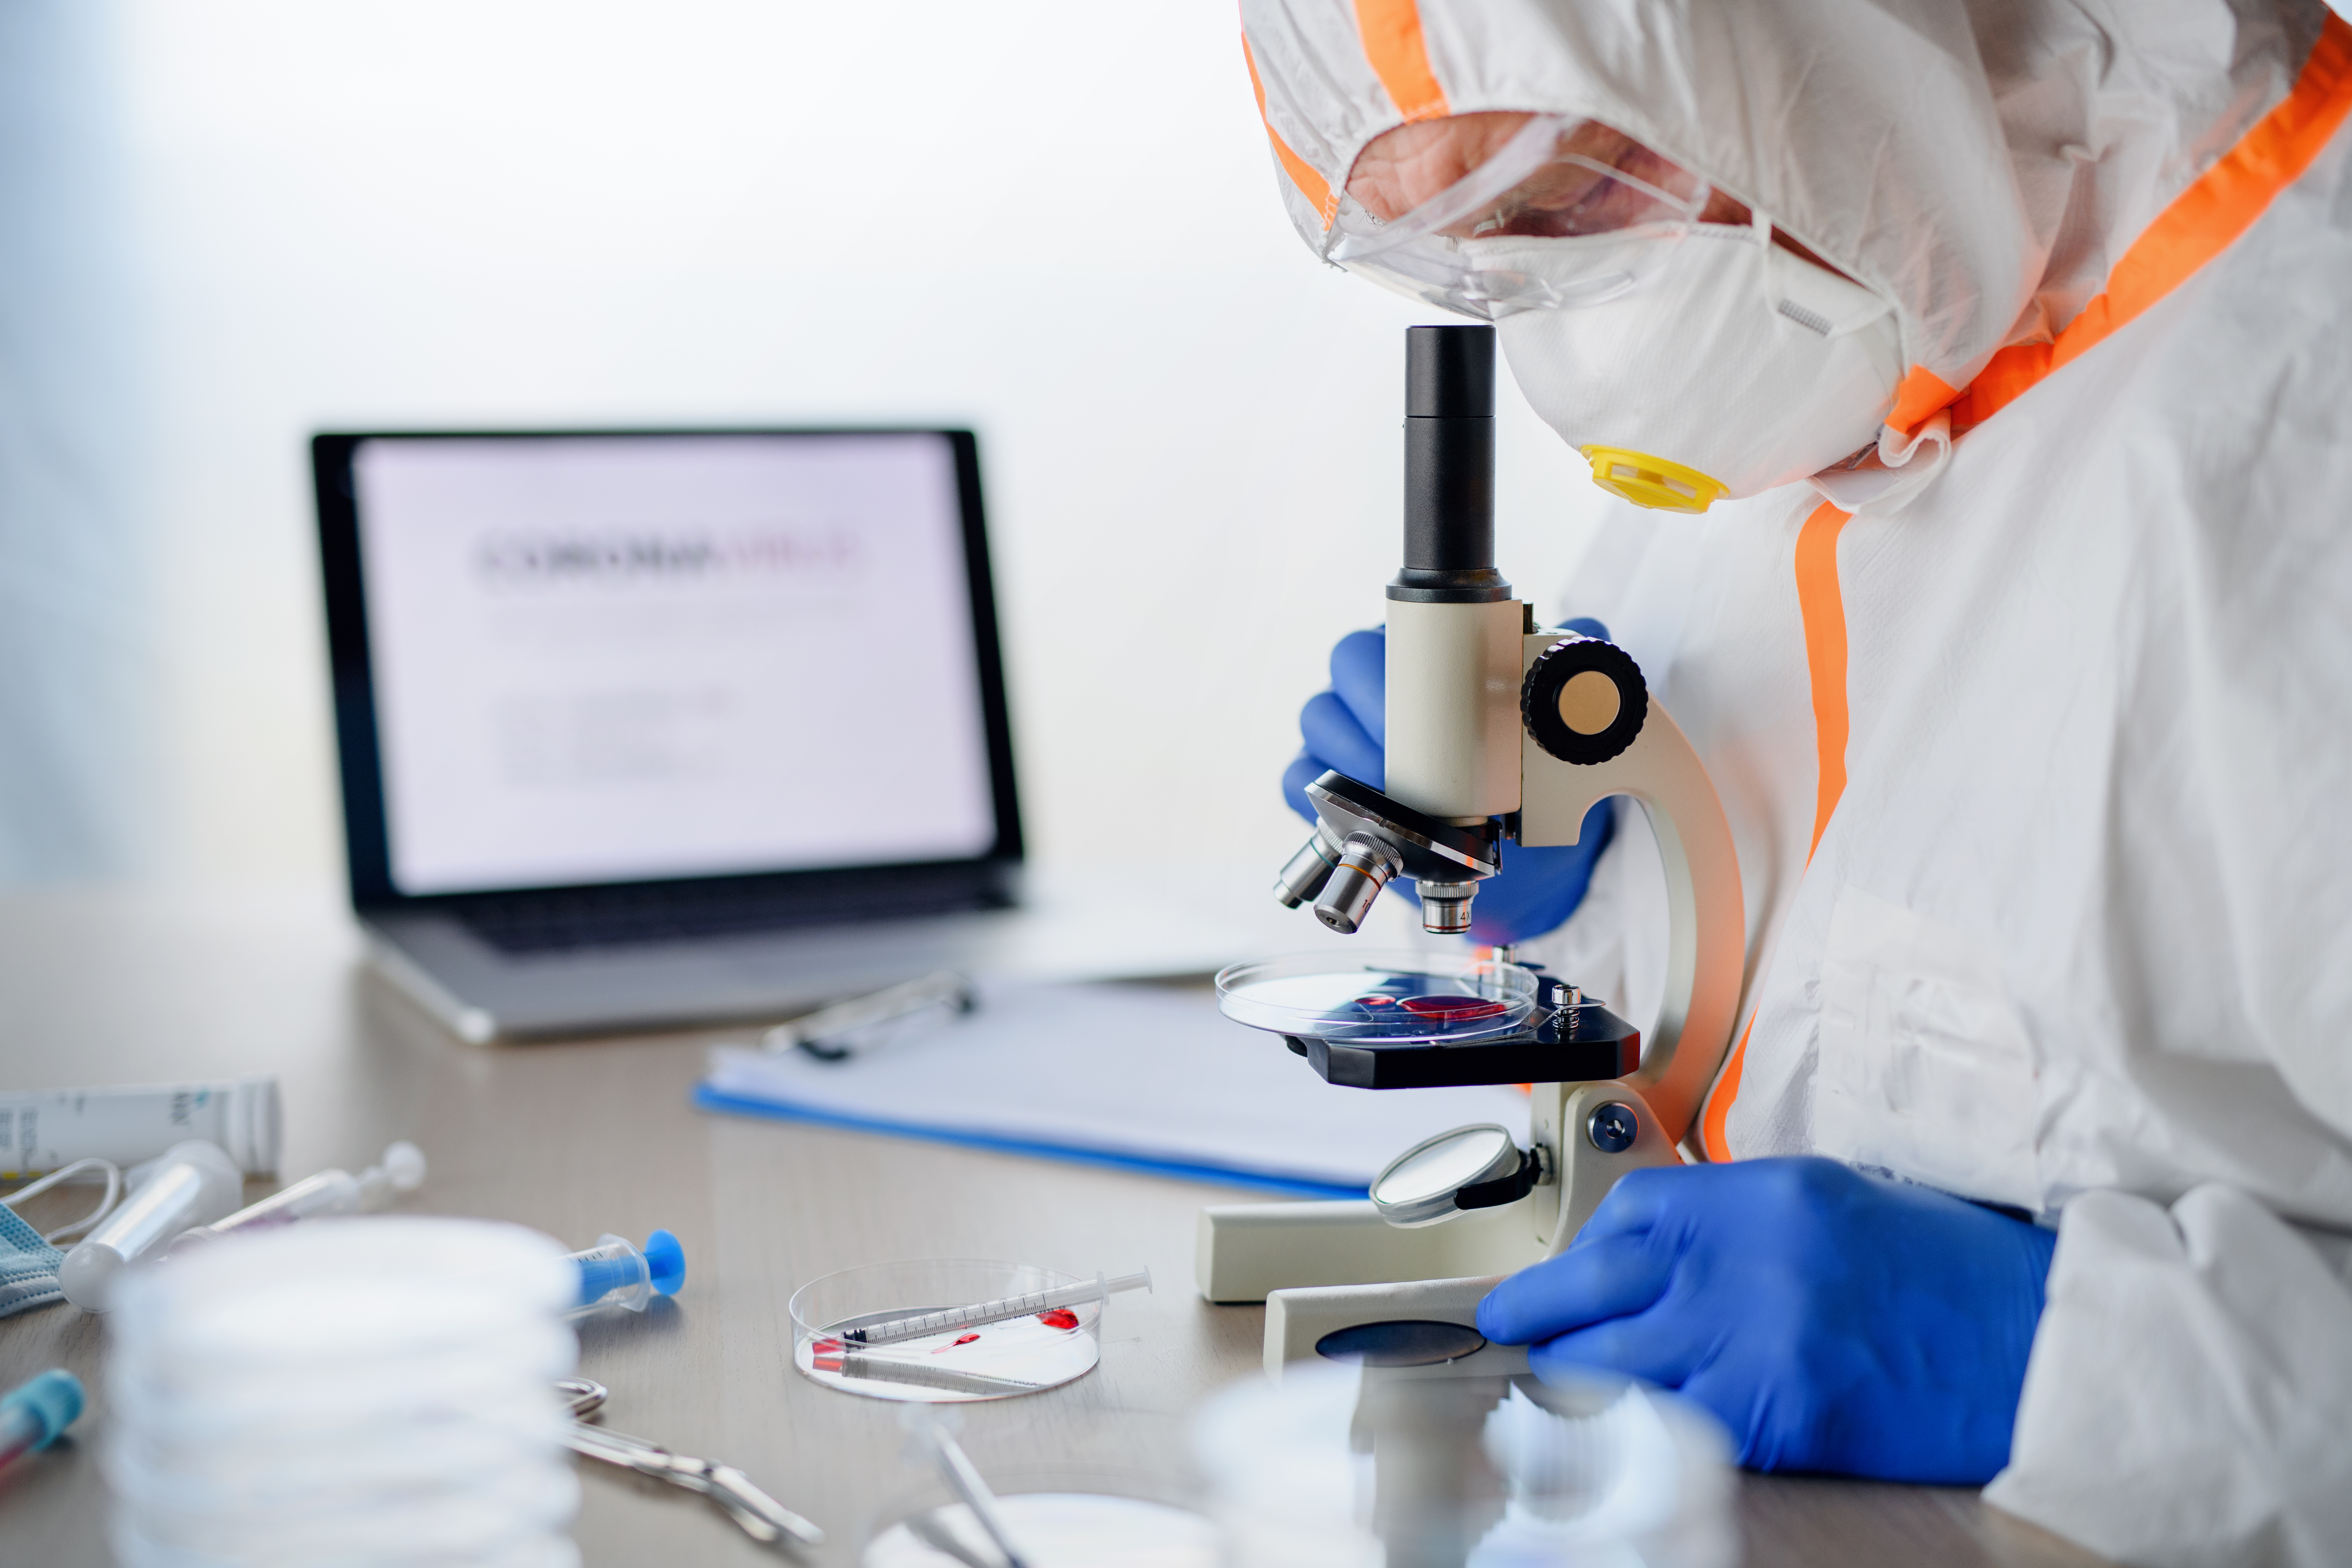 doctor-with-microscope-analyzing-blood-s